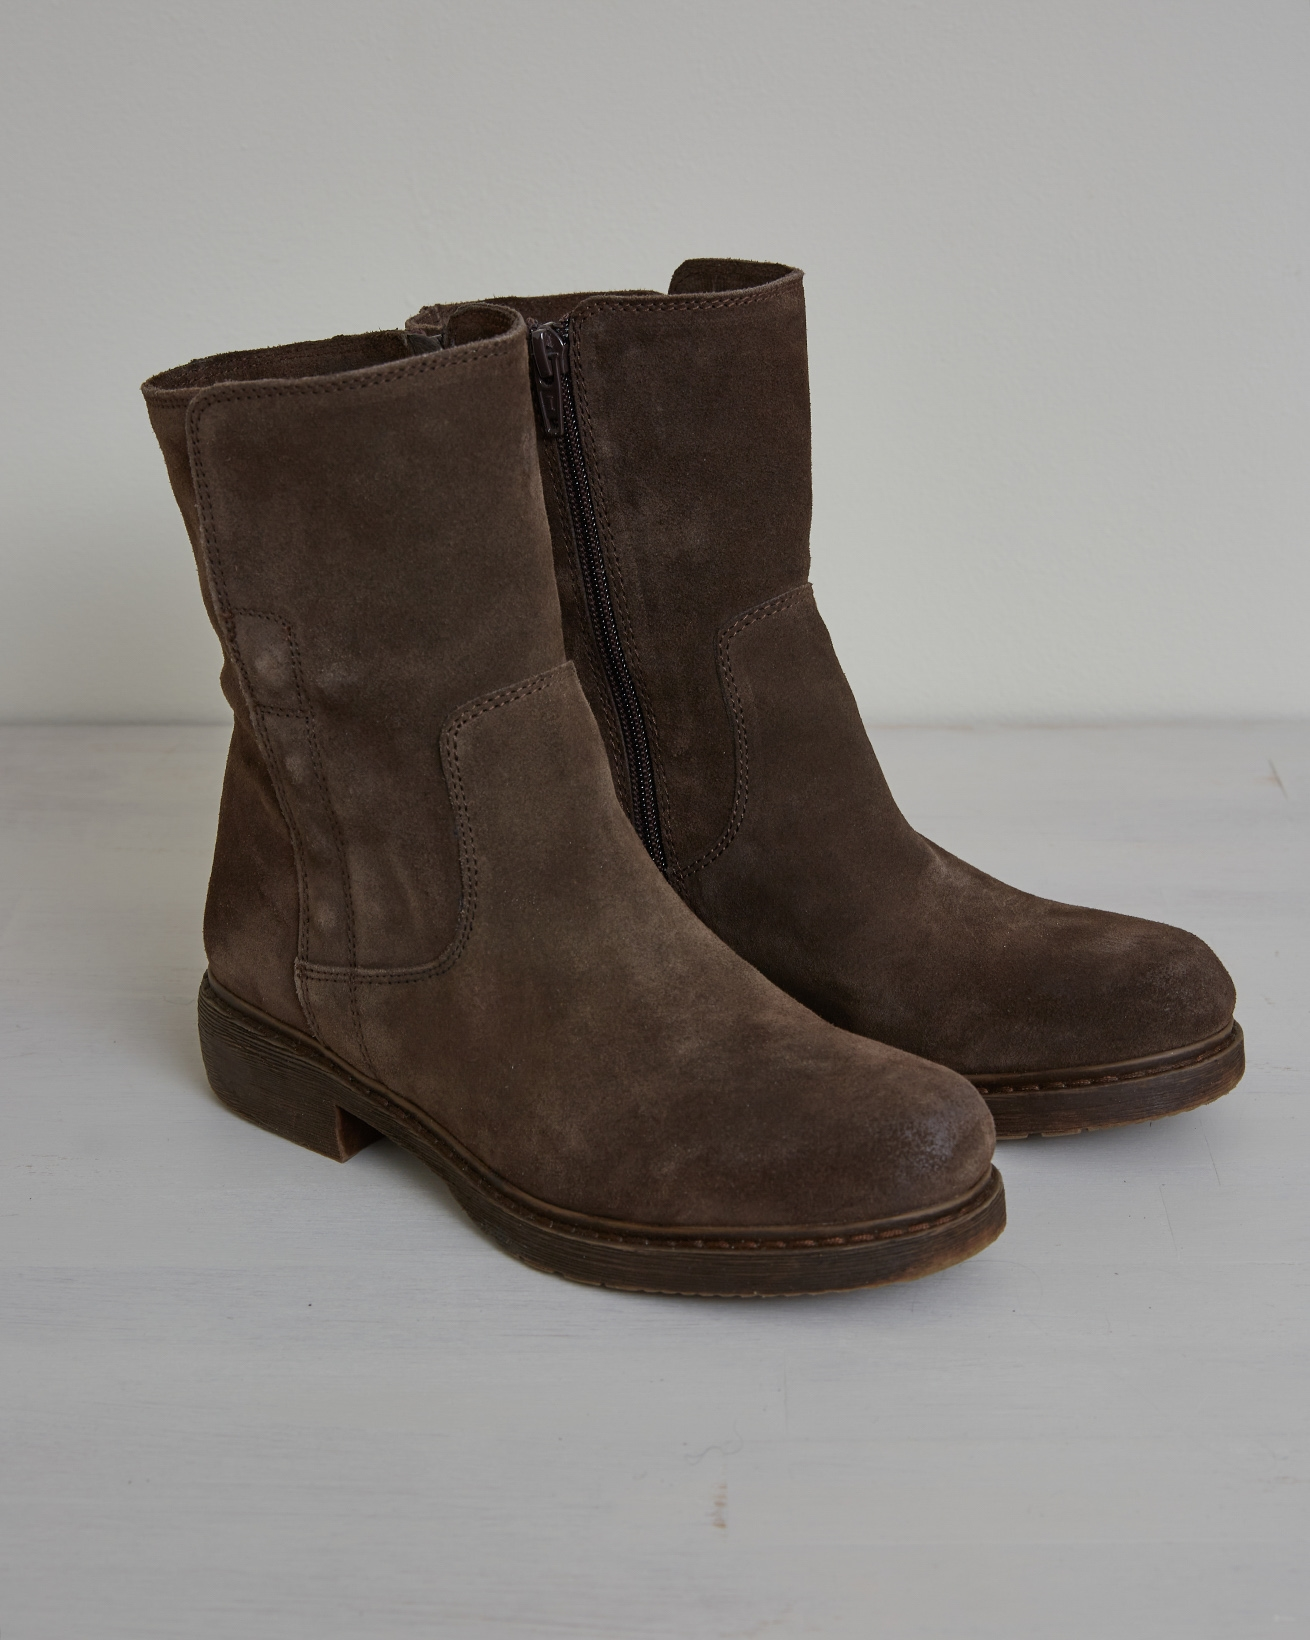 Essential Leather Ankle Boot - Size 38 - Chocolate - 2638